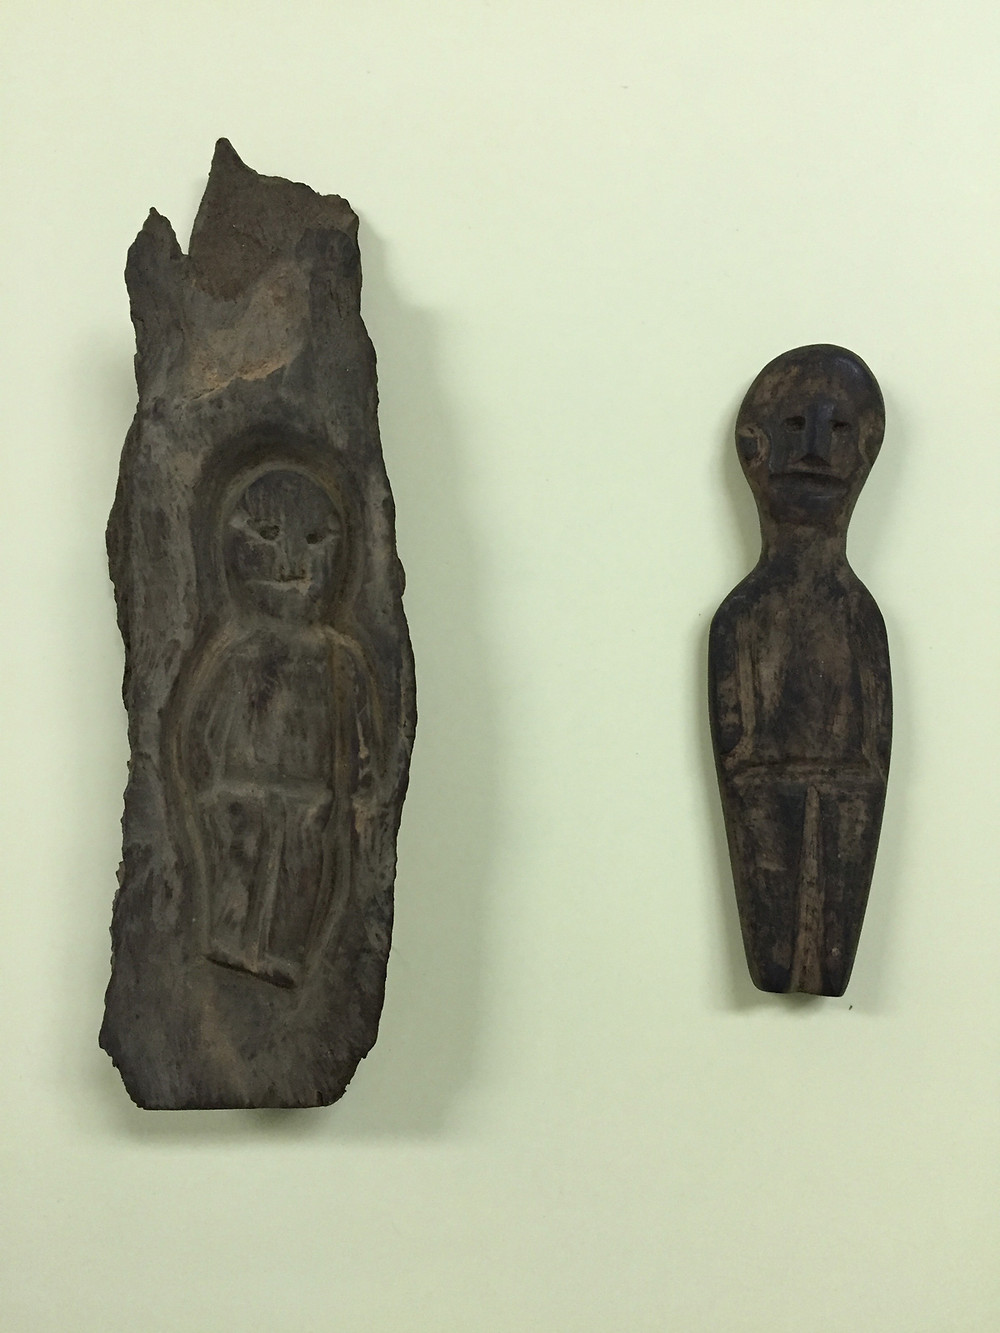 Carved figures from a Guantanamo cave